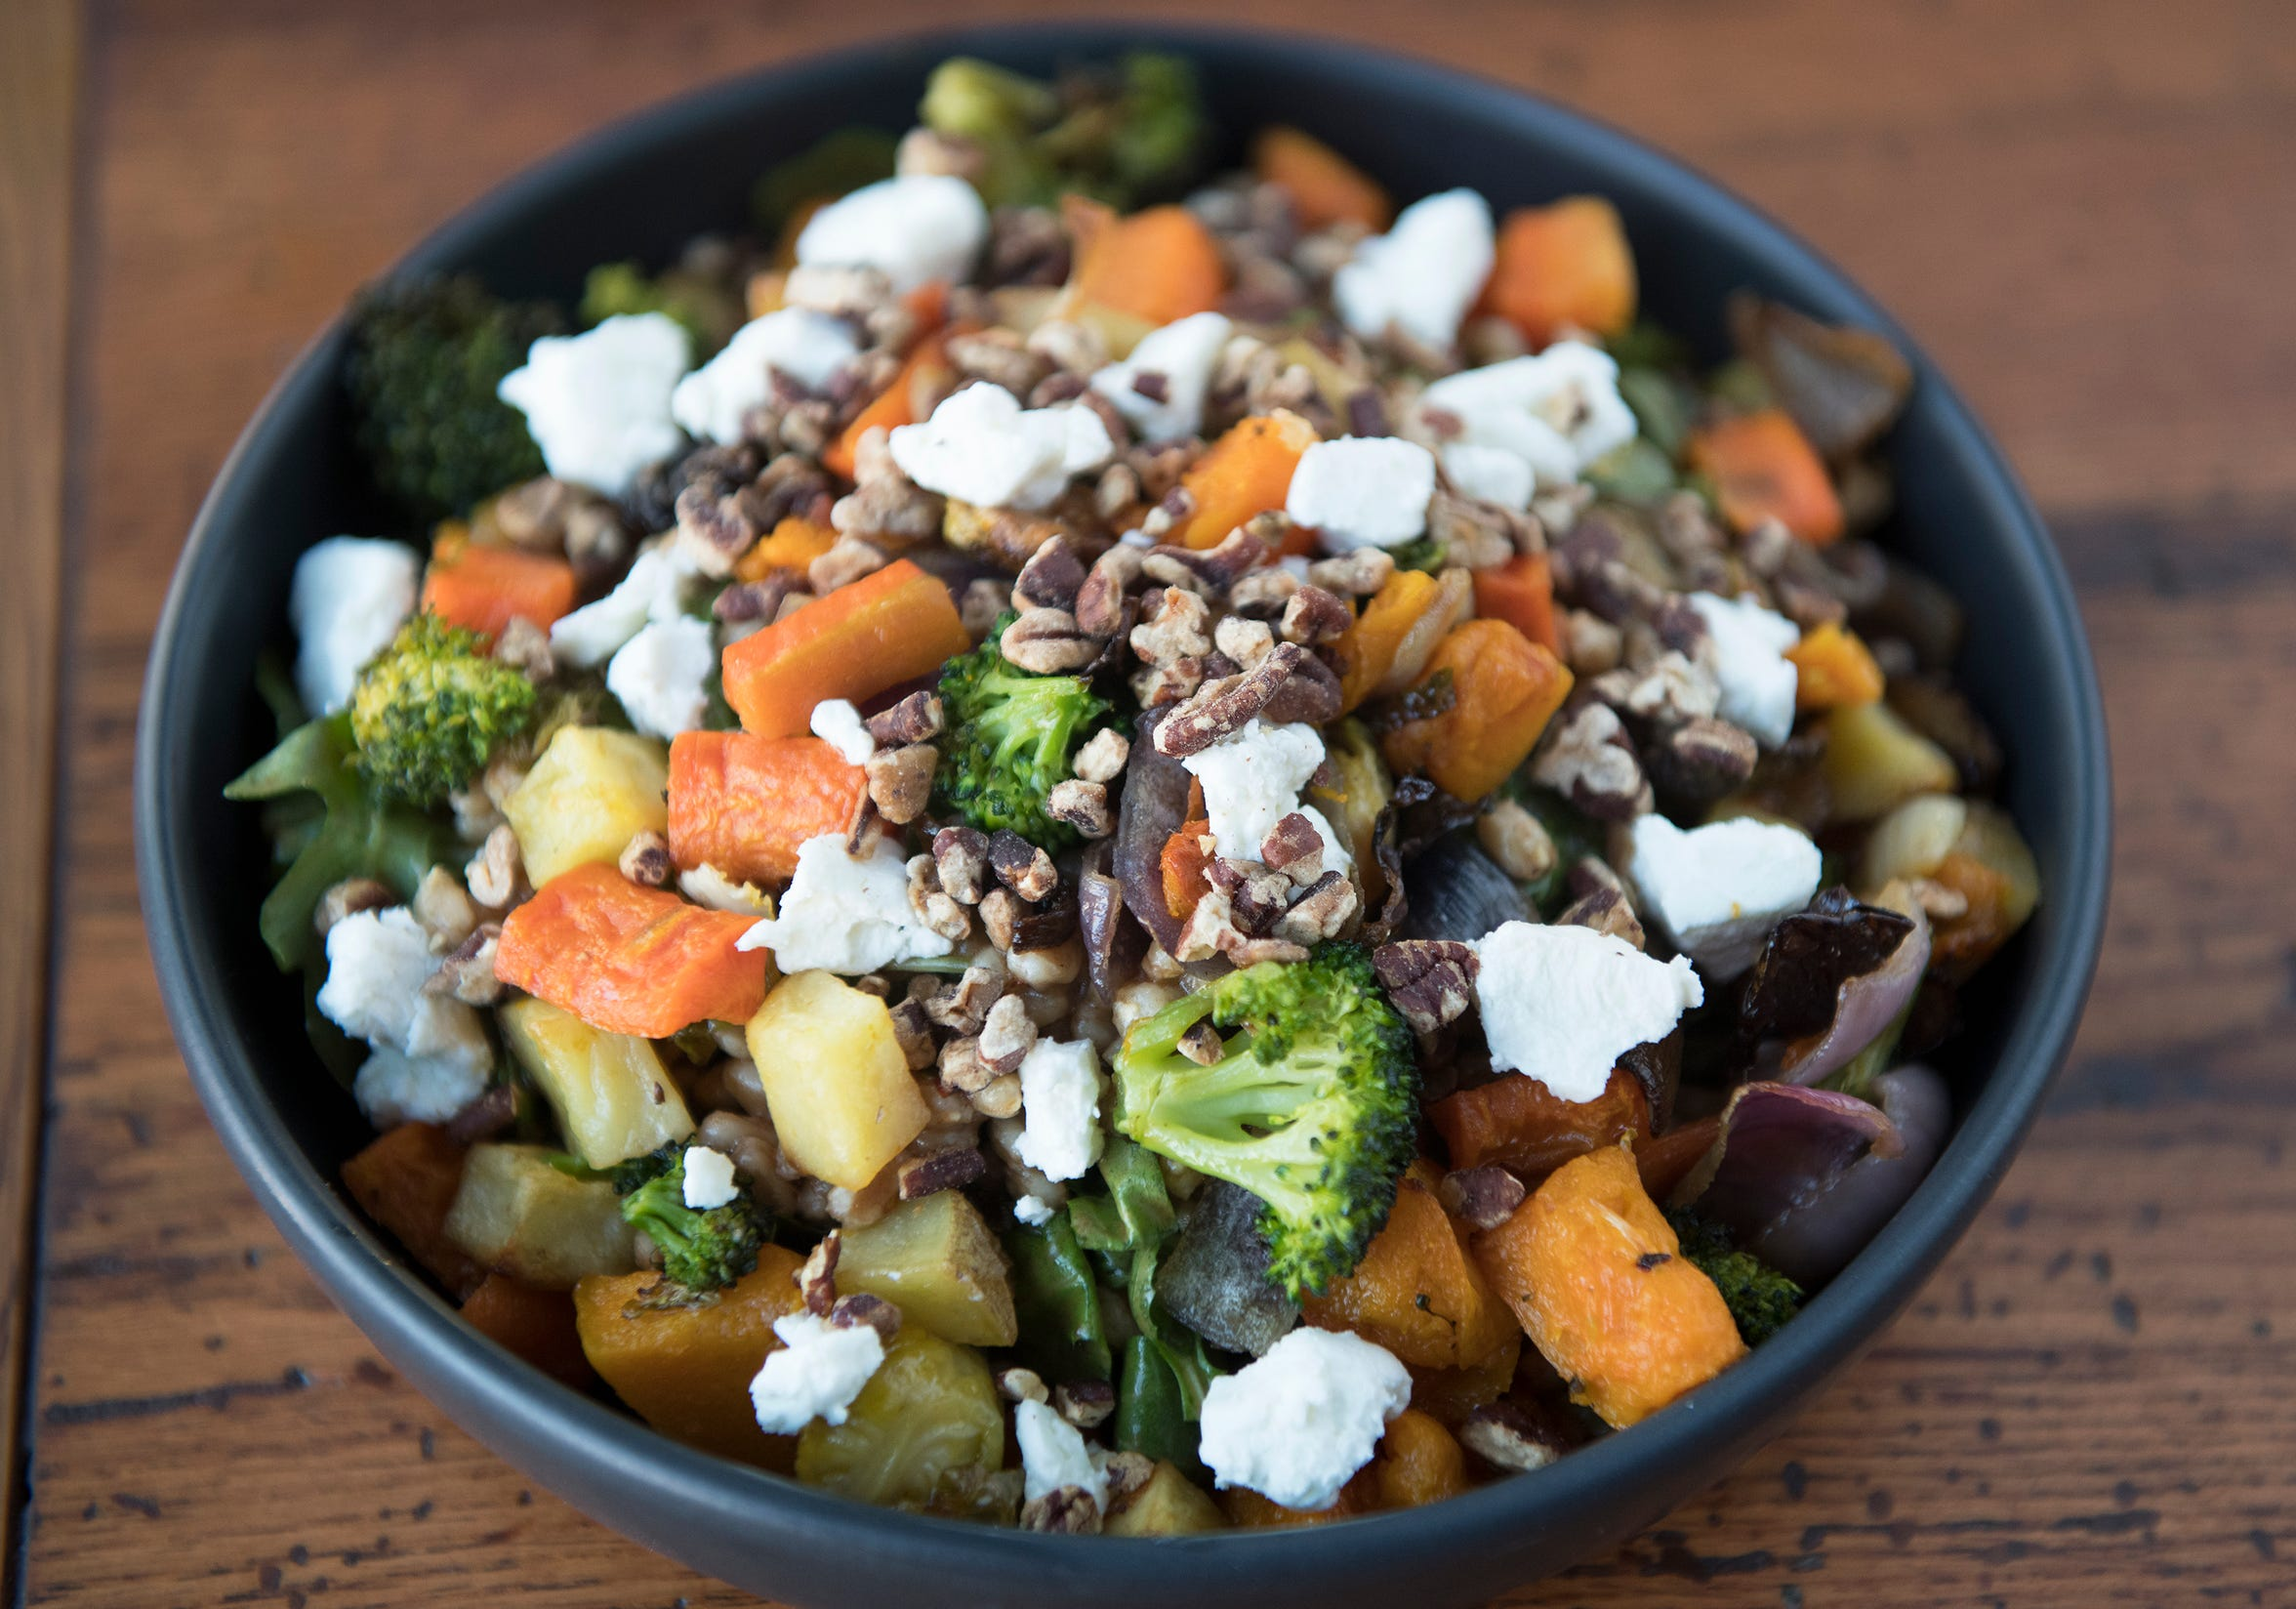 Mercado Ensalada offers a healthy bounty of roasted vegetables, toasted pecans and a chipotle balsamic vinaigrette.